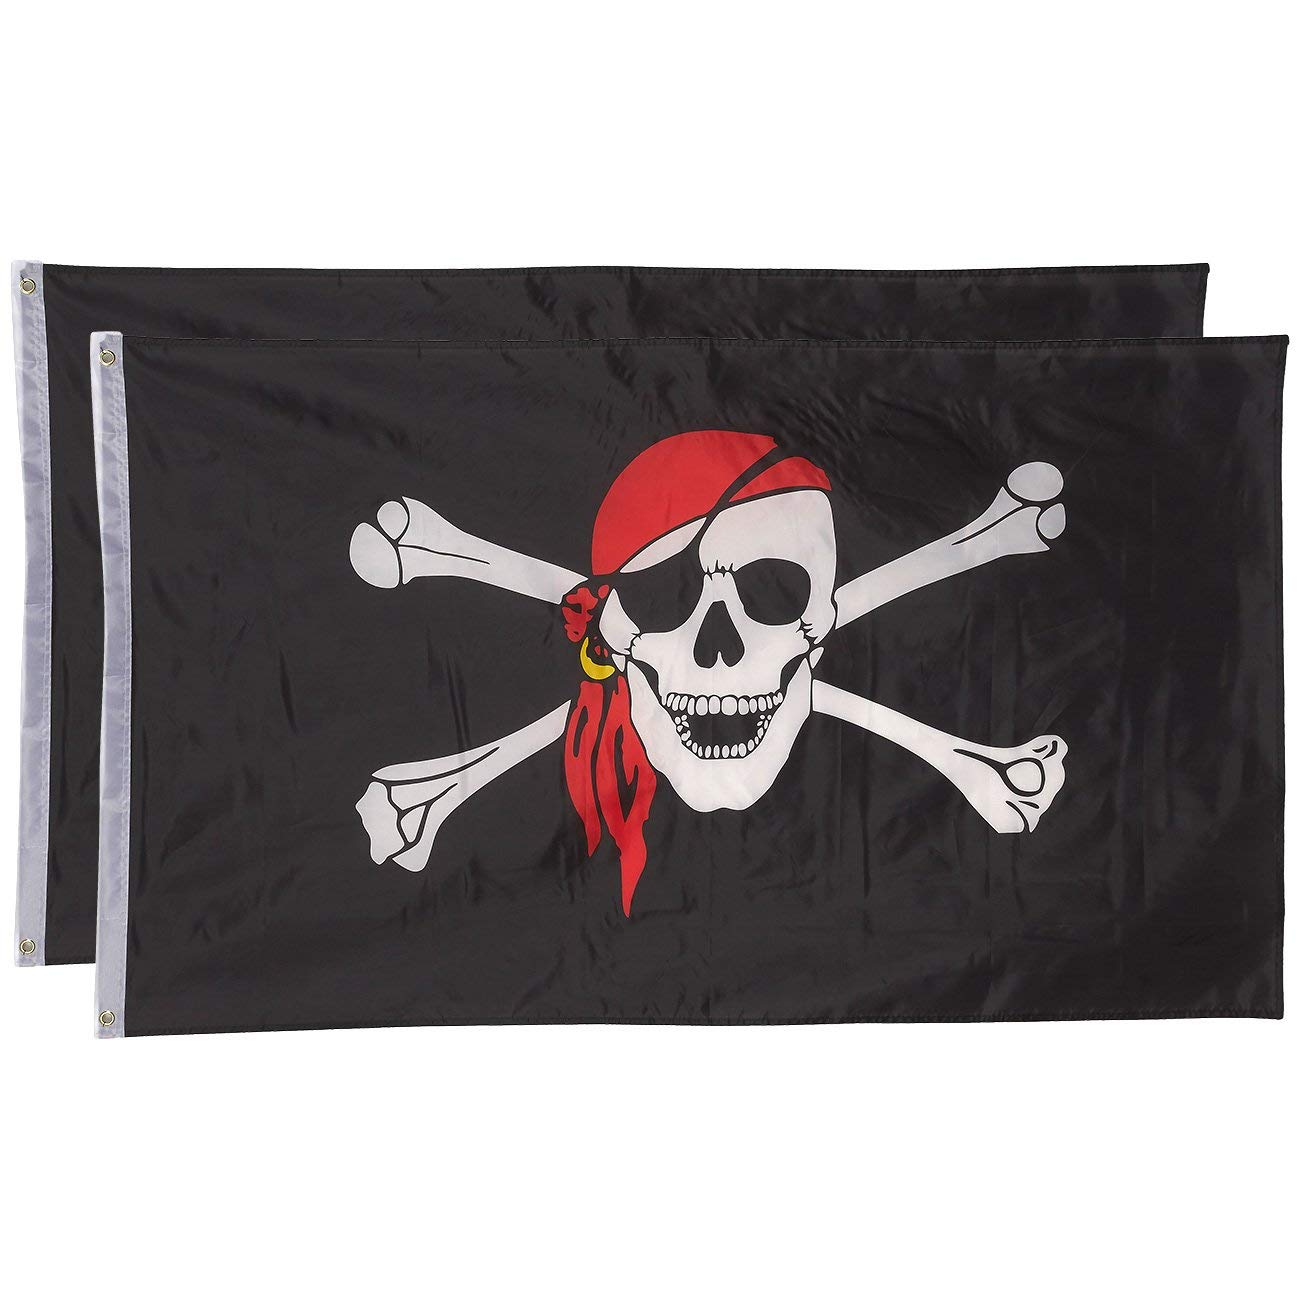 Juvale Pirate Flags - Pack of 2 Jolly Roger Pirate Flags - Skull Crossbones Red Bandana - Perfect Pirate Parties - 3 x 5 Foot Flags Grommets